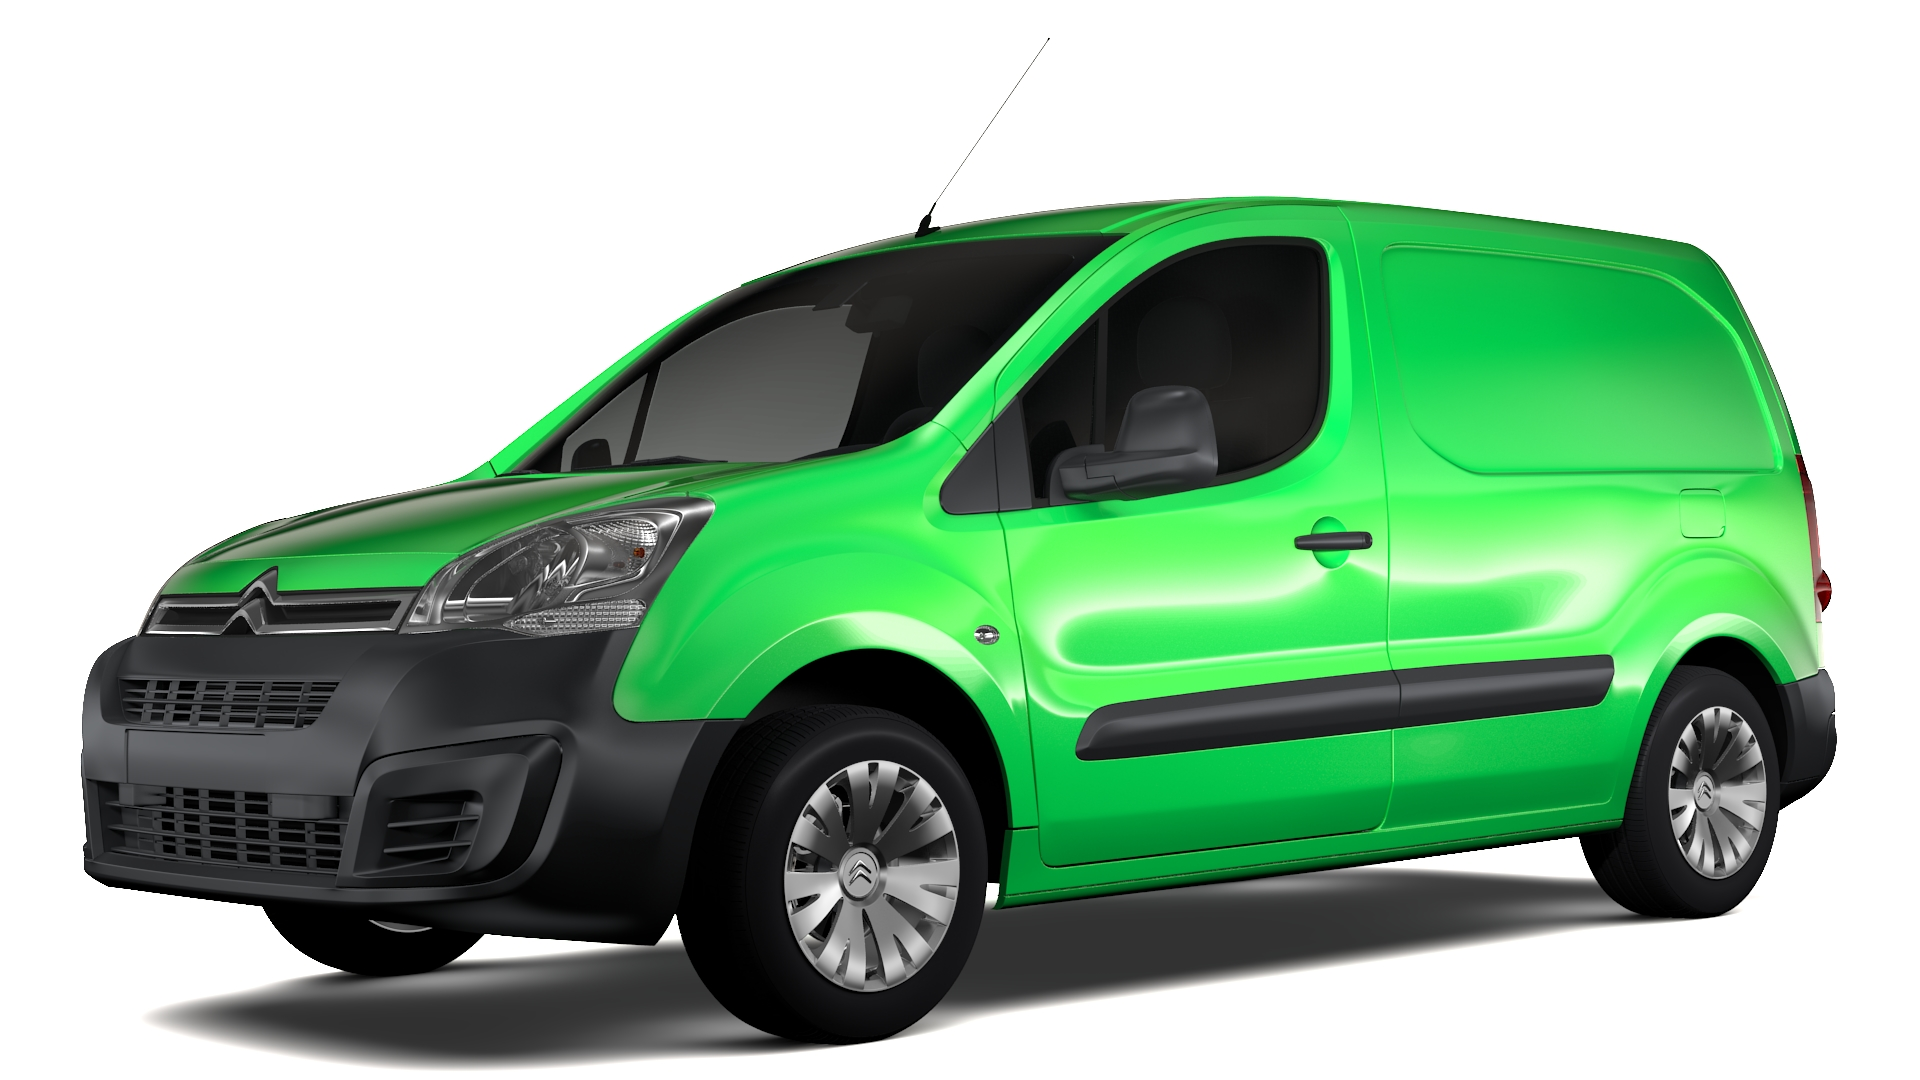 citroen berlingo van l1 full electric 2017 3d model buy citroen berlingo van l1 full electric. Black Bedroom Furniture Sets. Home Design Ideas